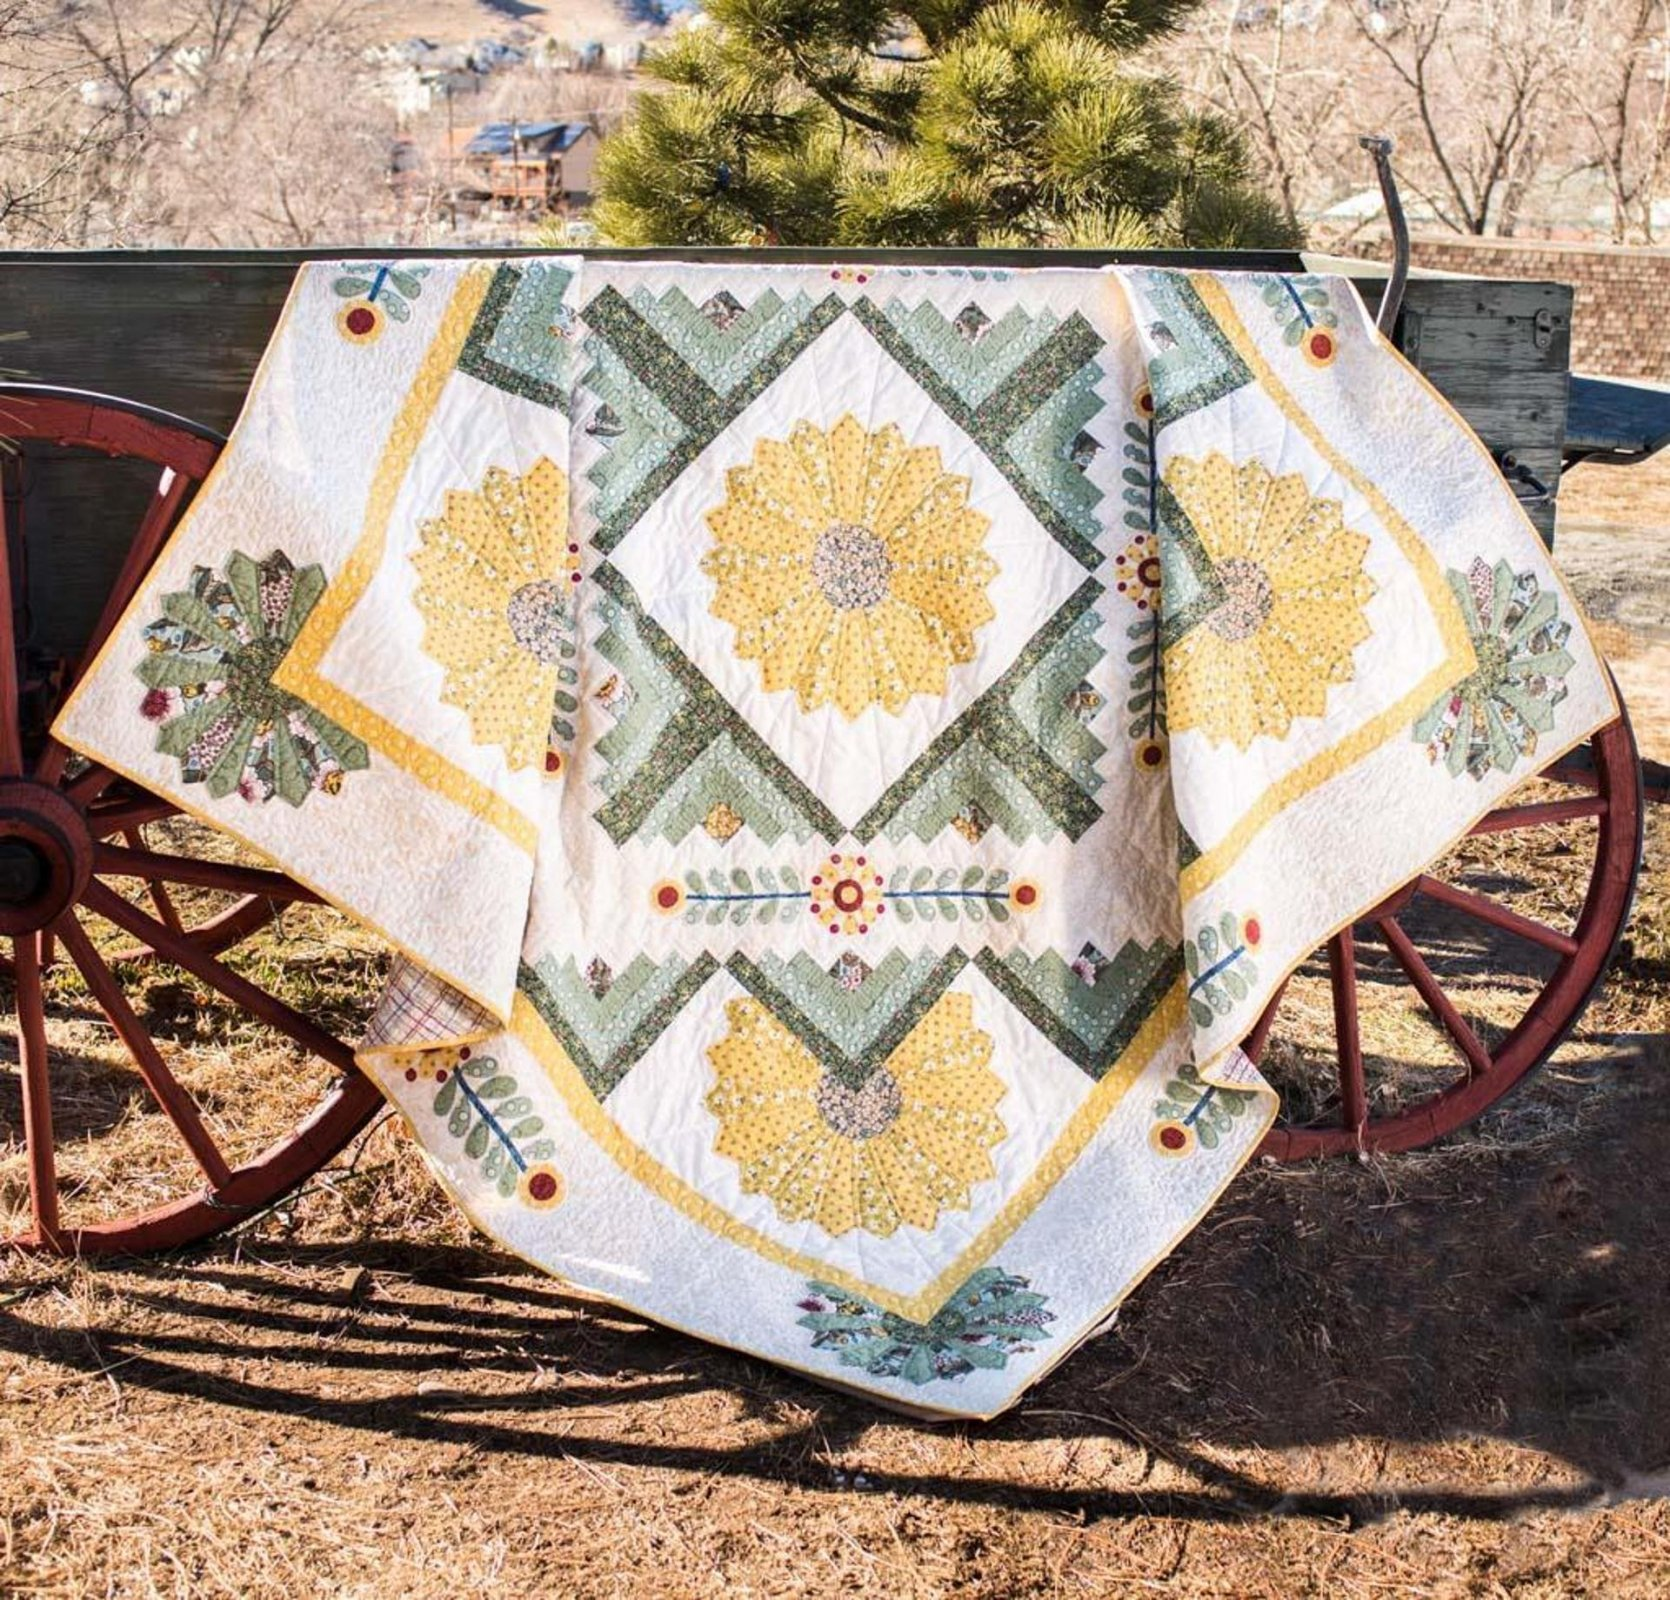 A Little Sunshine Quilt Kit  Christine Stainbrook RJR Home Again Fabrics  Lynette Jensen In